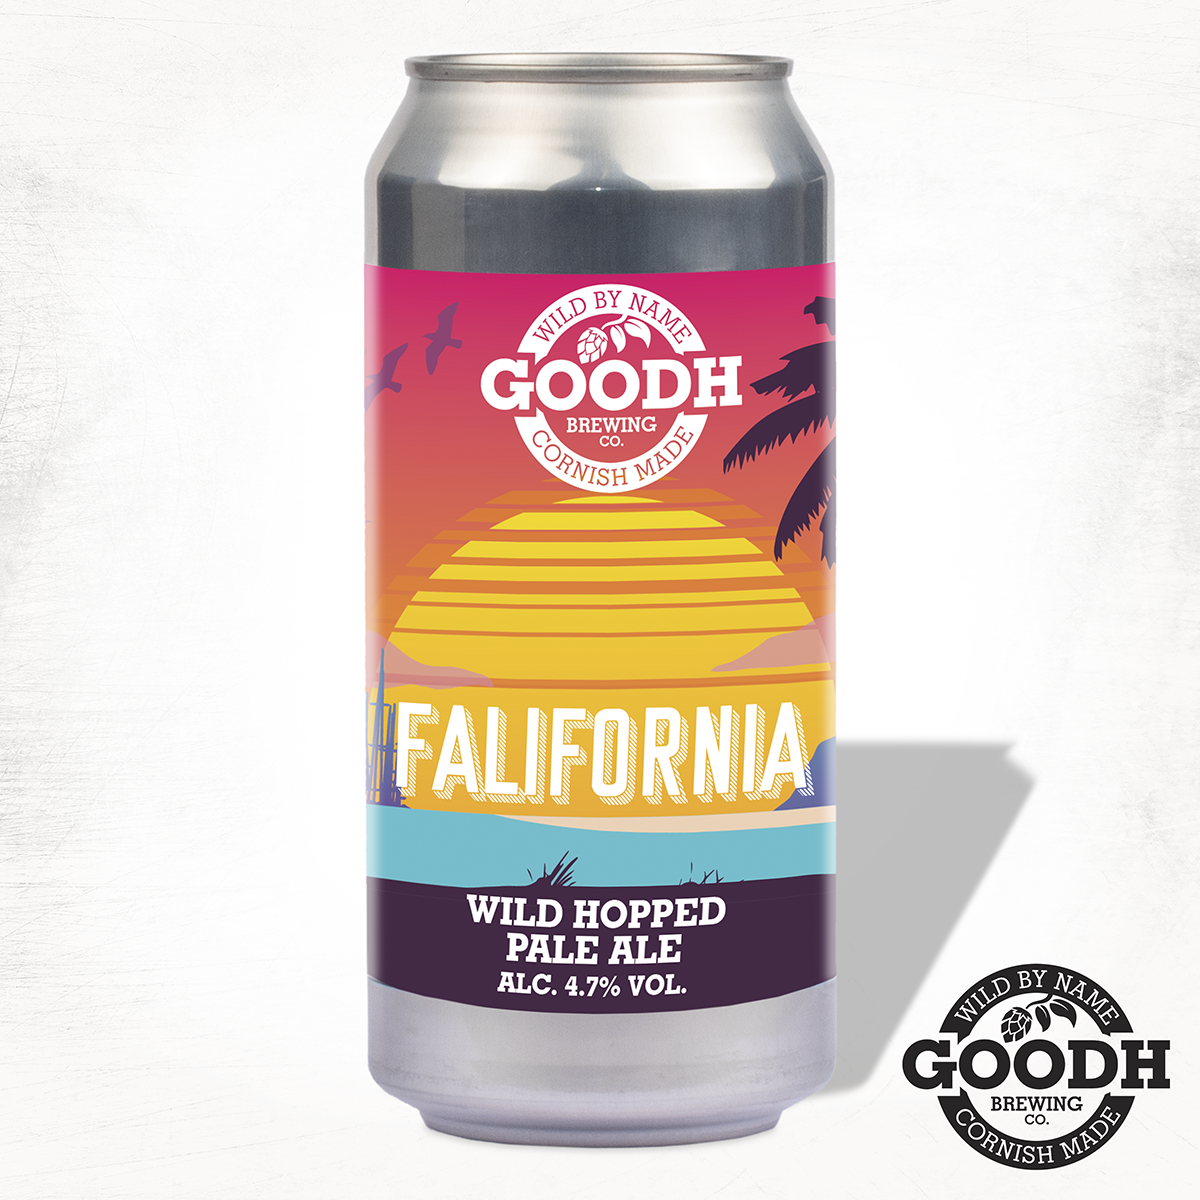 Goodh Brewing - Falifornia - Wild Hopped Pale Ale - 440ml Can